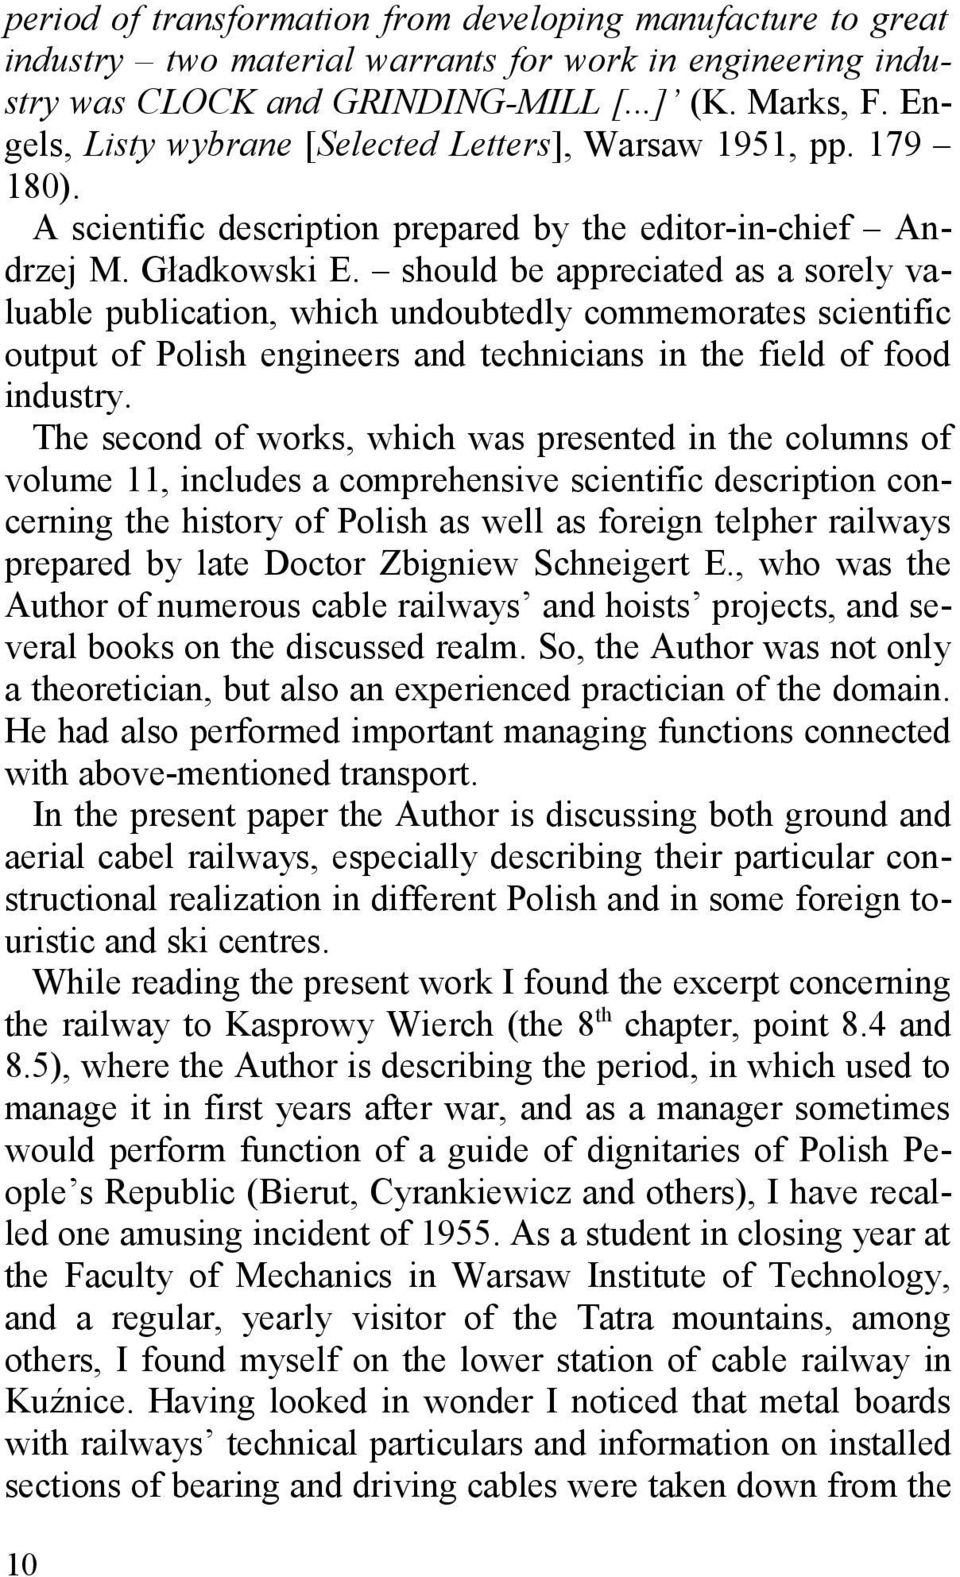 should be appreciated as a sorely valuable publication, which undoubtedly commemorates scientific output of Polish engineers and technicians in the field of food industry.